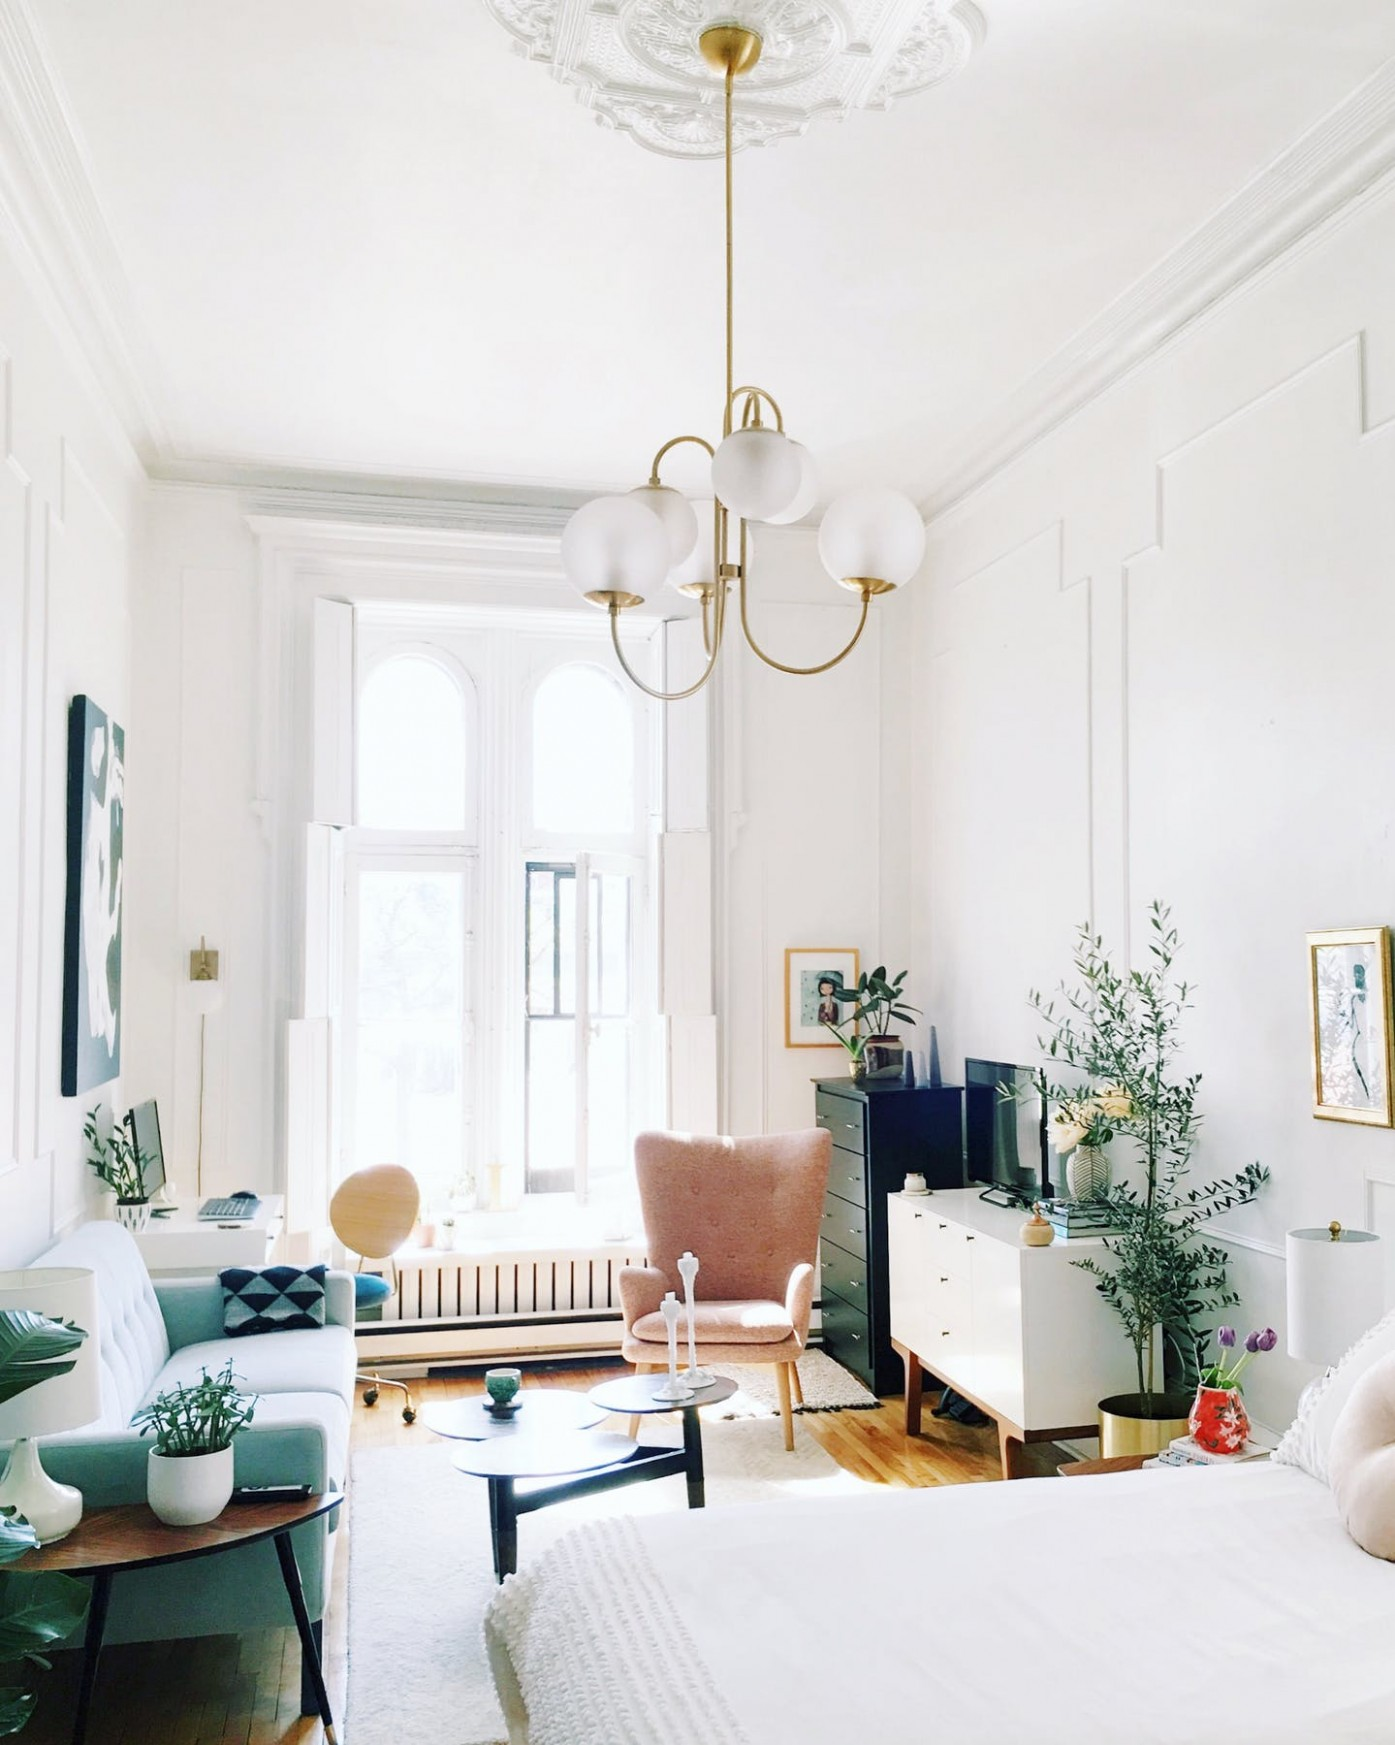 12 Small Apartment Decor Tips To Make The Most of Your Space  - Small Apartment Decor Ideas